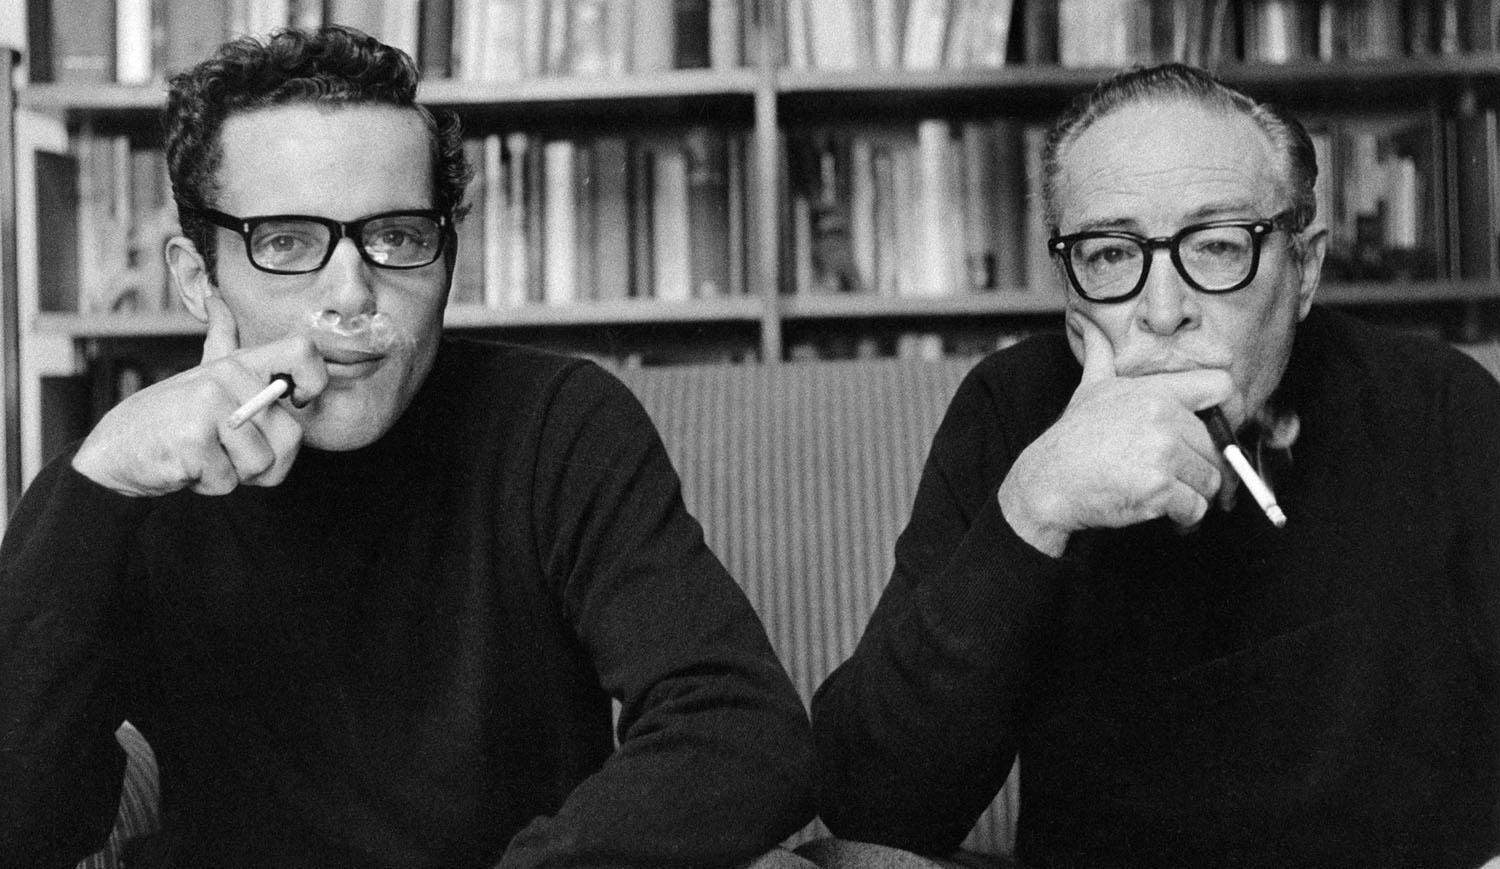 Christopher and Dalton Trumbo